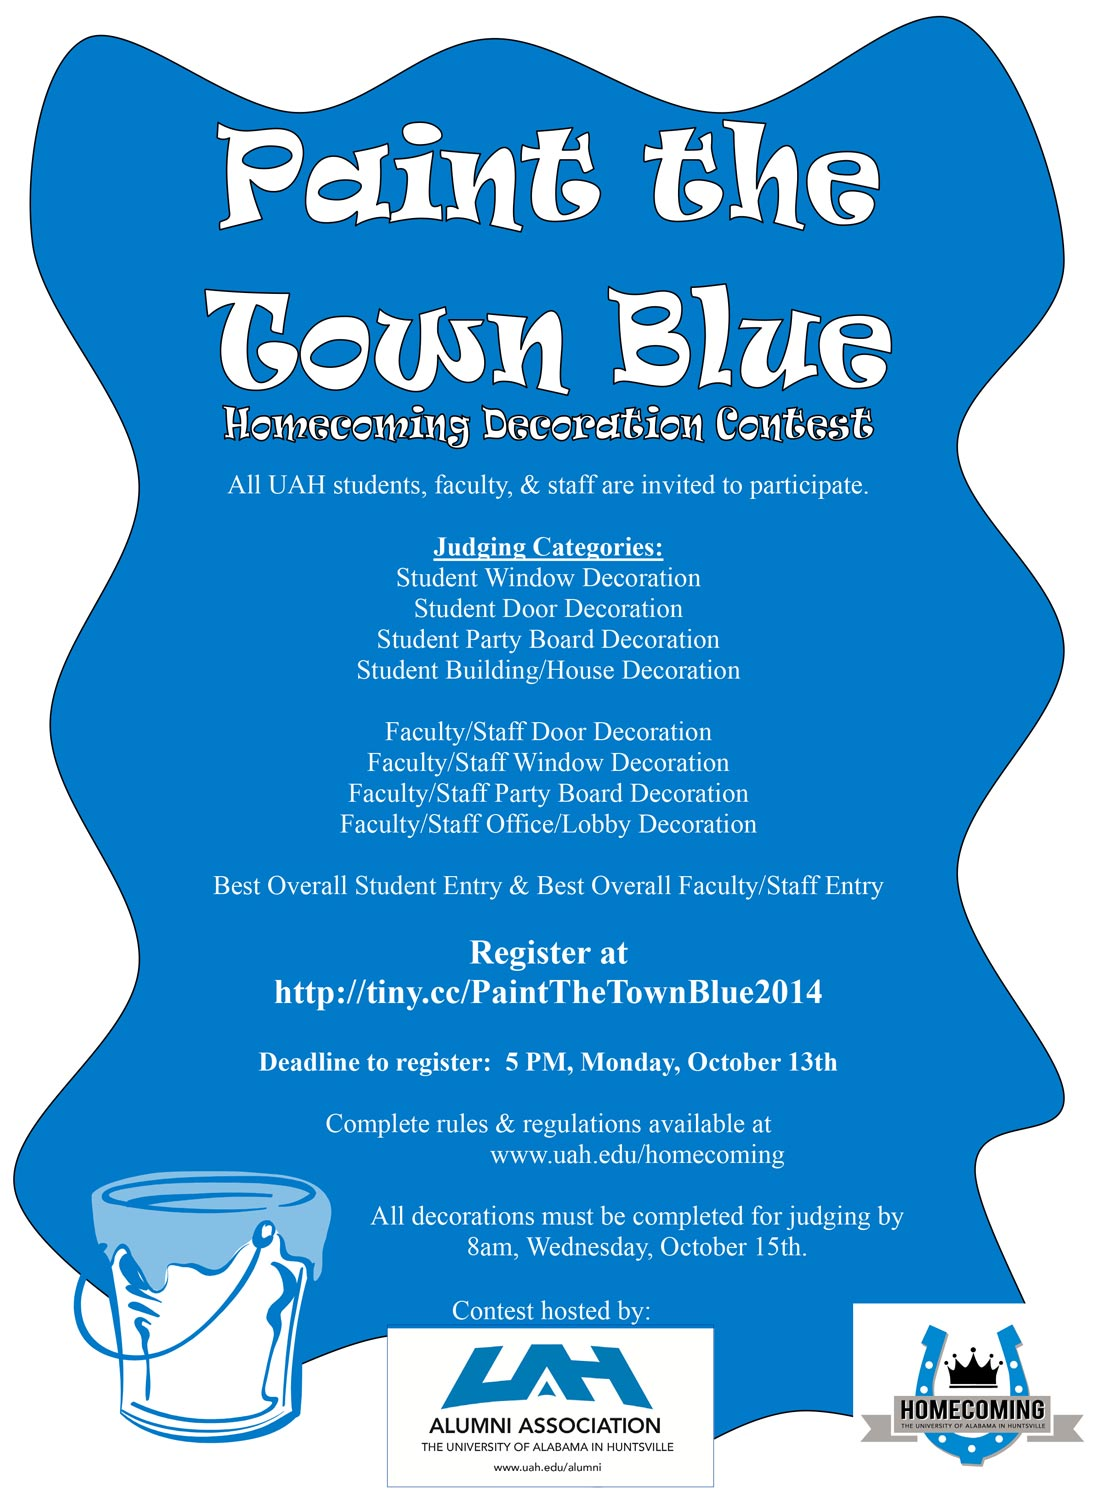 Paint the Town Blue. Homecoming decoration contest. All UAH students, faculty, & staff are invited to participate.  Judging Categories:  Student Window Decoration  Student Door Decoration  Student Party Board Decoration  Student Building/House Decoration  Faculty/Staff Door Decoration  Faculty/Staff Window Decoration  Faculty/Staff Party Board Decoration  Faculty/Staff Office/Lobby Decoration  Best Overall Student Entry & Best Overall Faculty/Staff Entry  Register at  http://tiny.cc/PaintTheTownBlue2014  Deadline to register: 5 PM, Monday, October 13th  Complete rules & regulations available at  www.uah.edu/homecoming  All decorations must be completed for judging by  8am, Wednesday, October 15th.  Contest hosted by: UAH